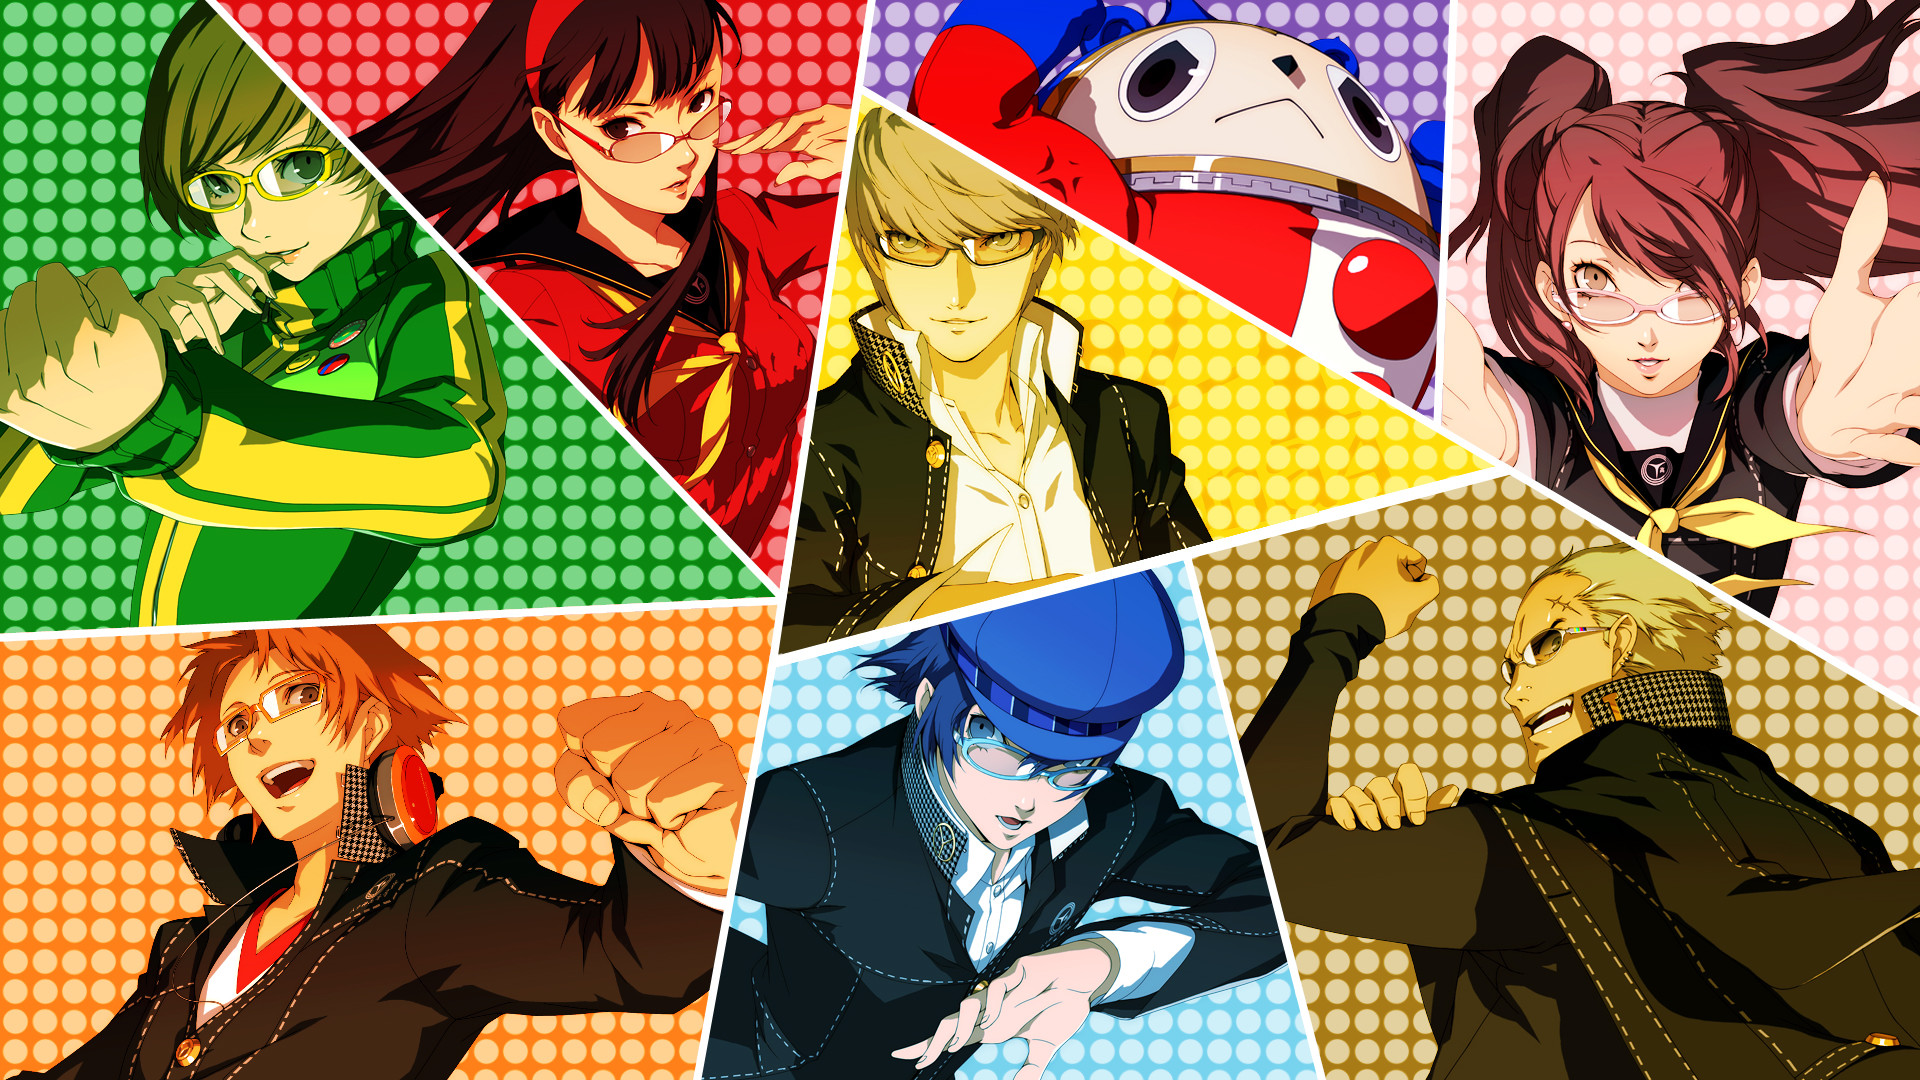 Shin Megami Tensei Images Jack Frost Hd Wallpaper And